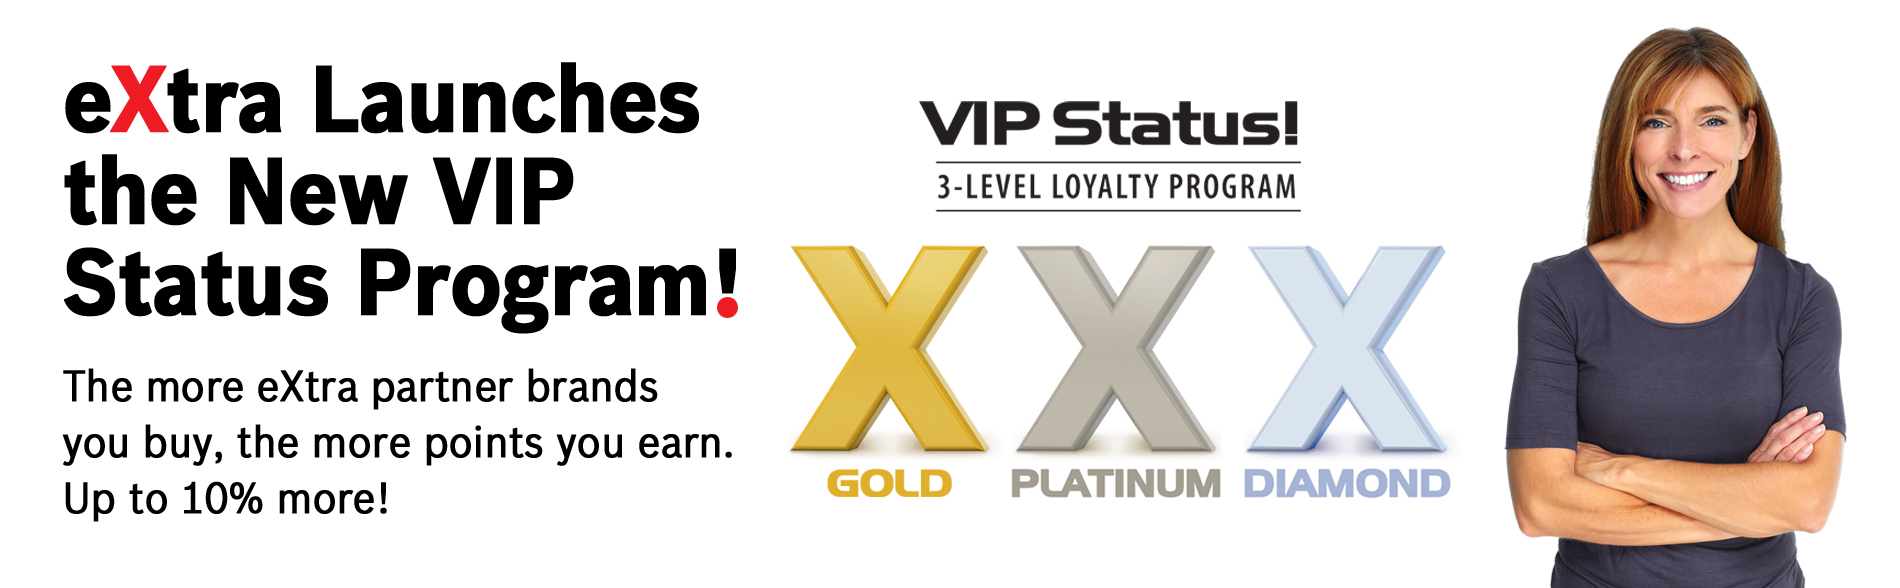 eXtra Launches the VIP Status Program